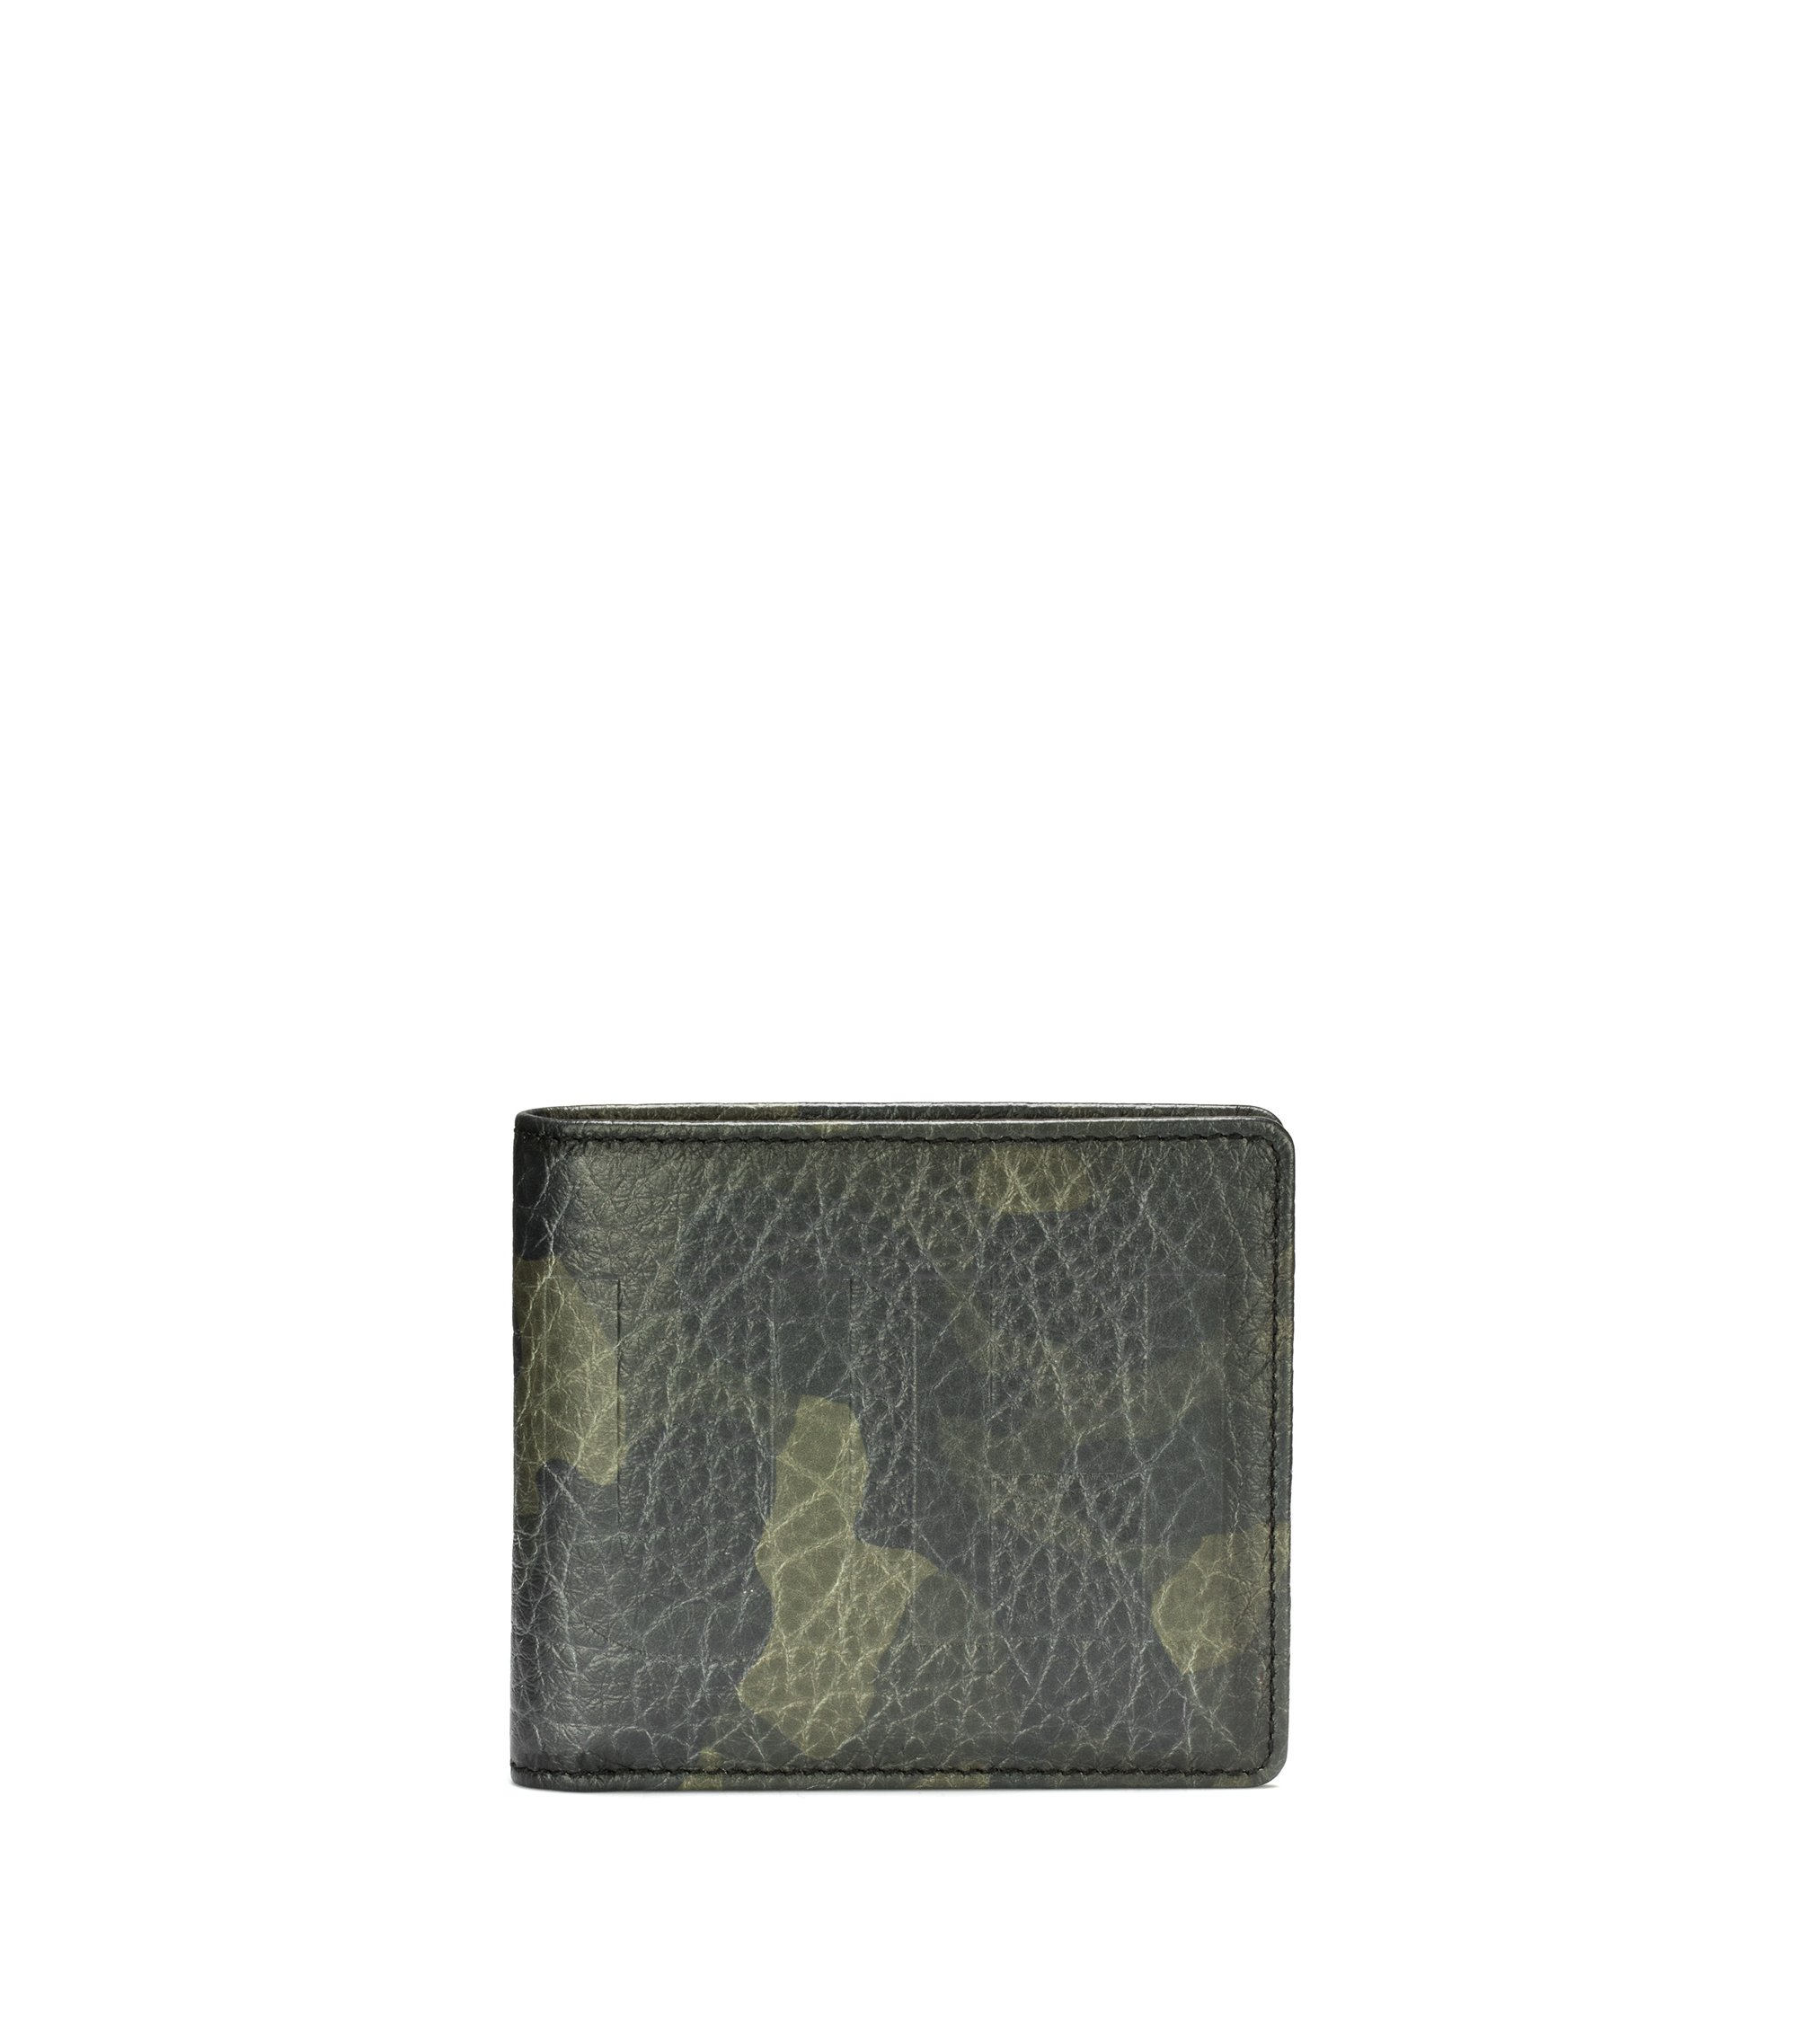 Billfold wallet in camouflage-print leather with eight card slots, Patterned